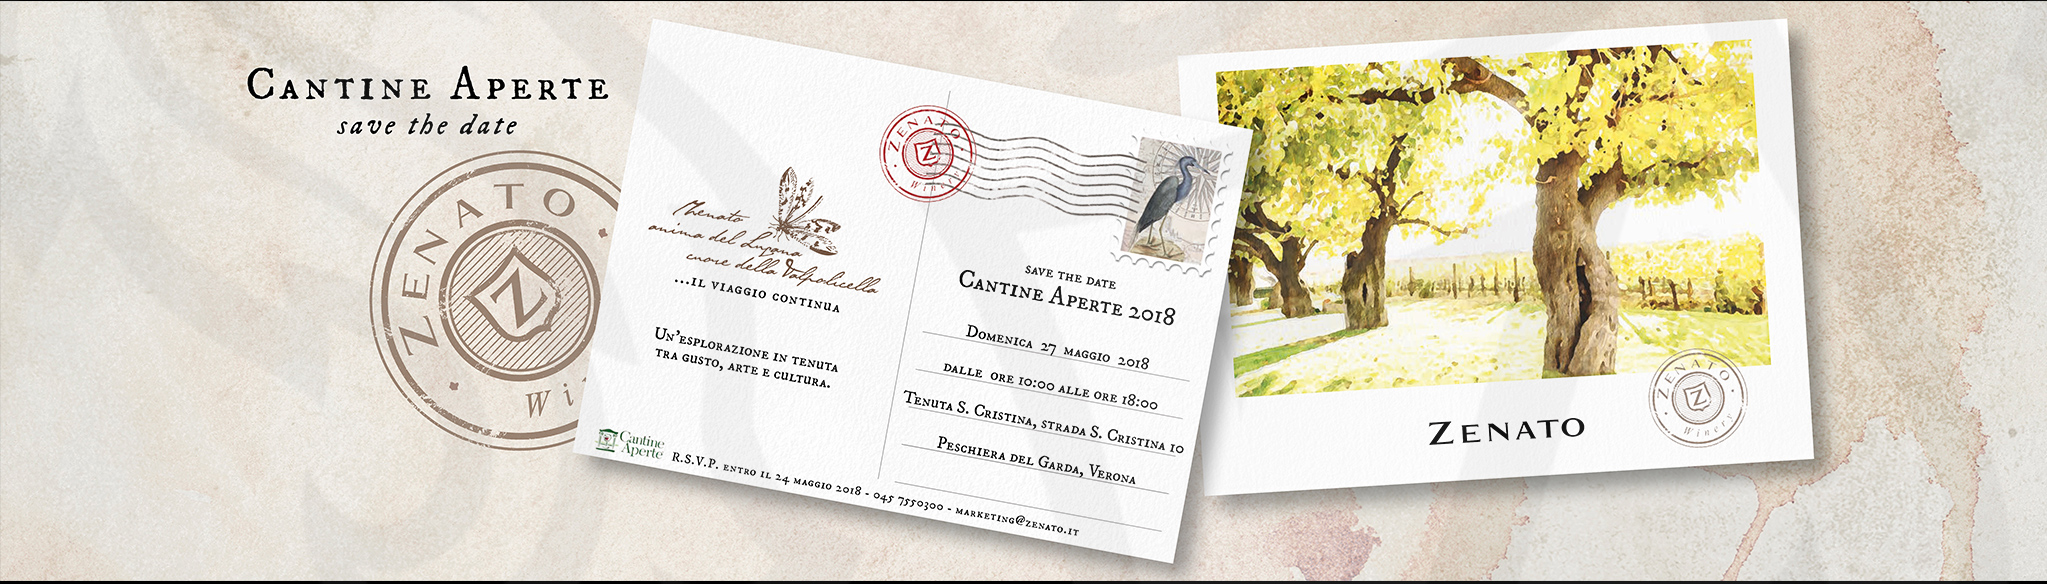 cantine aperte home 2018 sate the date